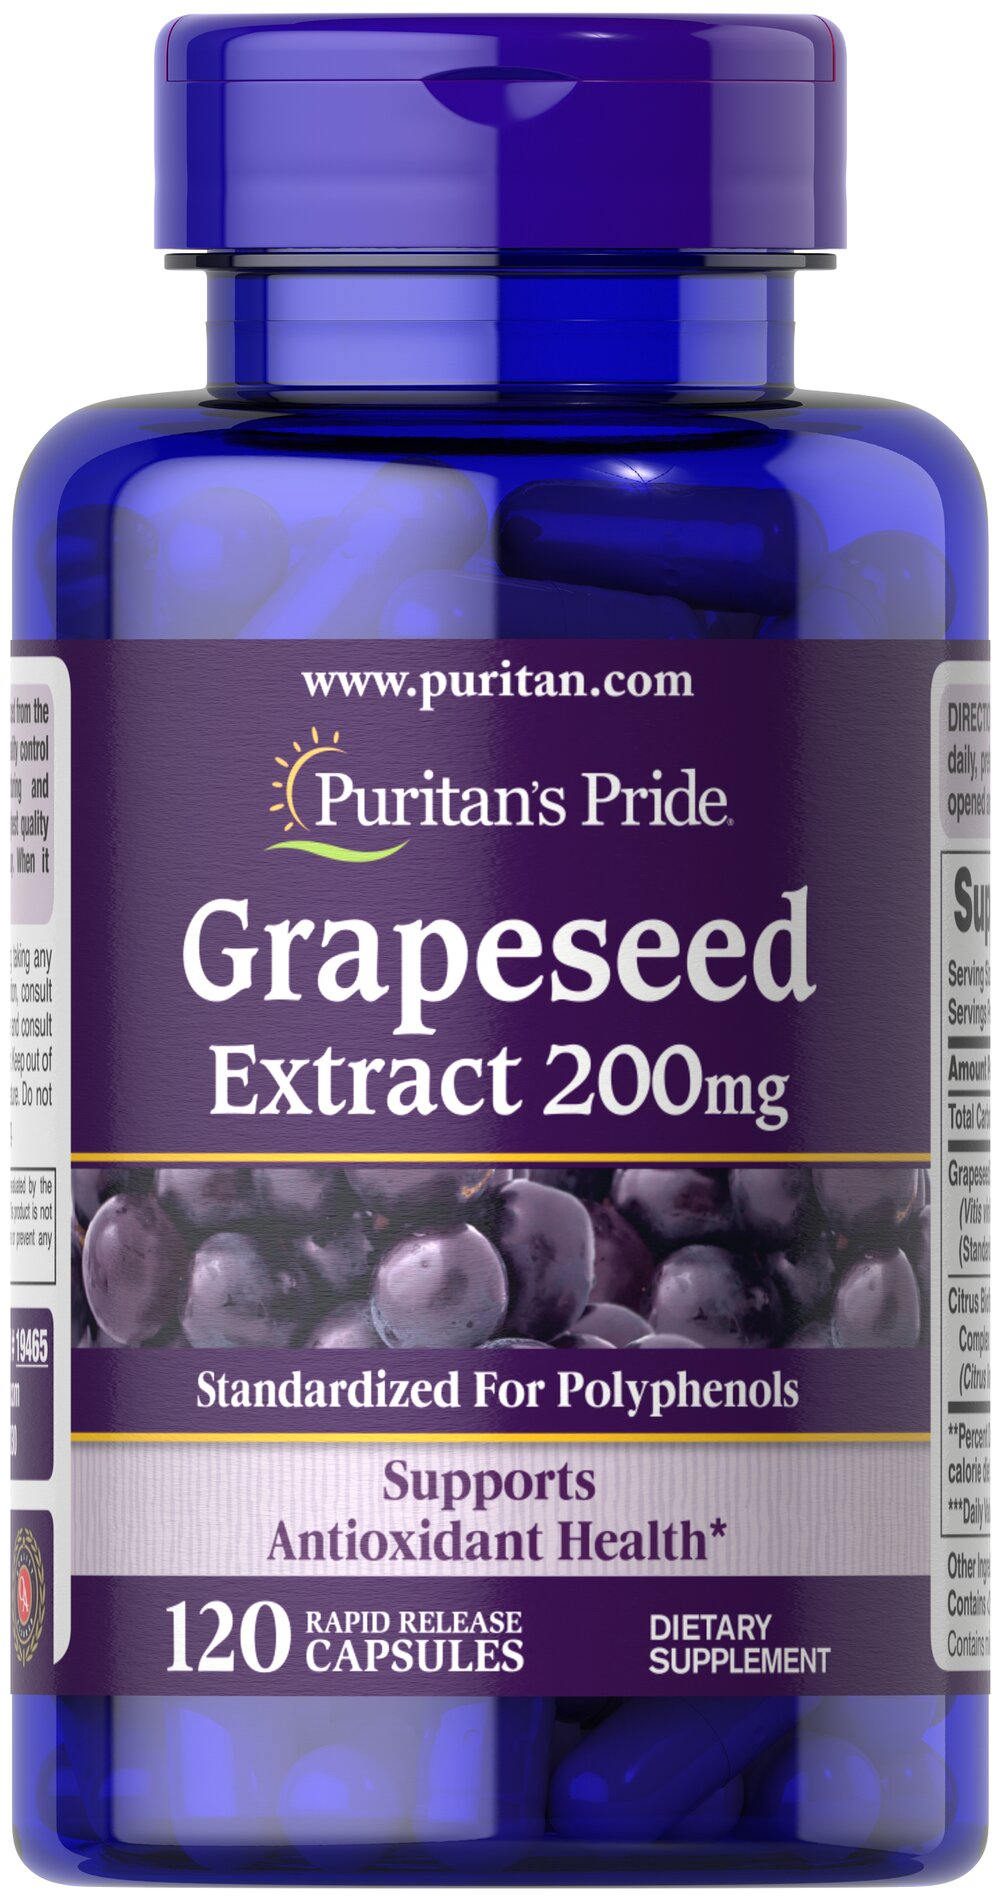 Grapeseed Extract 200 mg <p><strong>Grapeseed Extract</strong> helps maintain antioxidant health.** It contains oligomeric proanthocyanidins (OPCs), which are naturally occurring bioflavonoids. Free of yeast, wheat, sugar, preservatives, soy,  gluten, fish, artificial color, artificial flavor and sodium (less than 5 mg per serving). Standardized to contain 50% Polyphenols. Adults can take one capsule one or two times daily.</p> 120 Capsules 200 mg $35.99